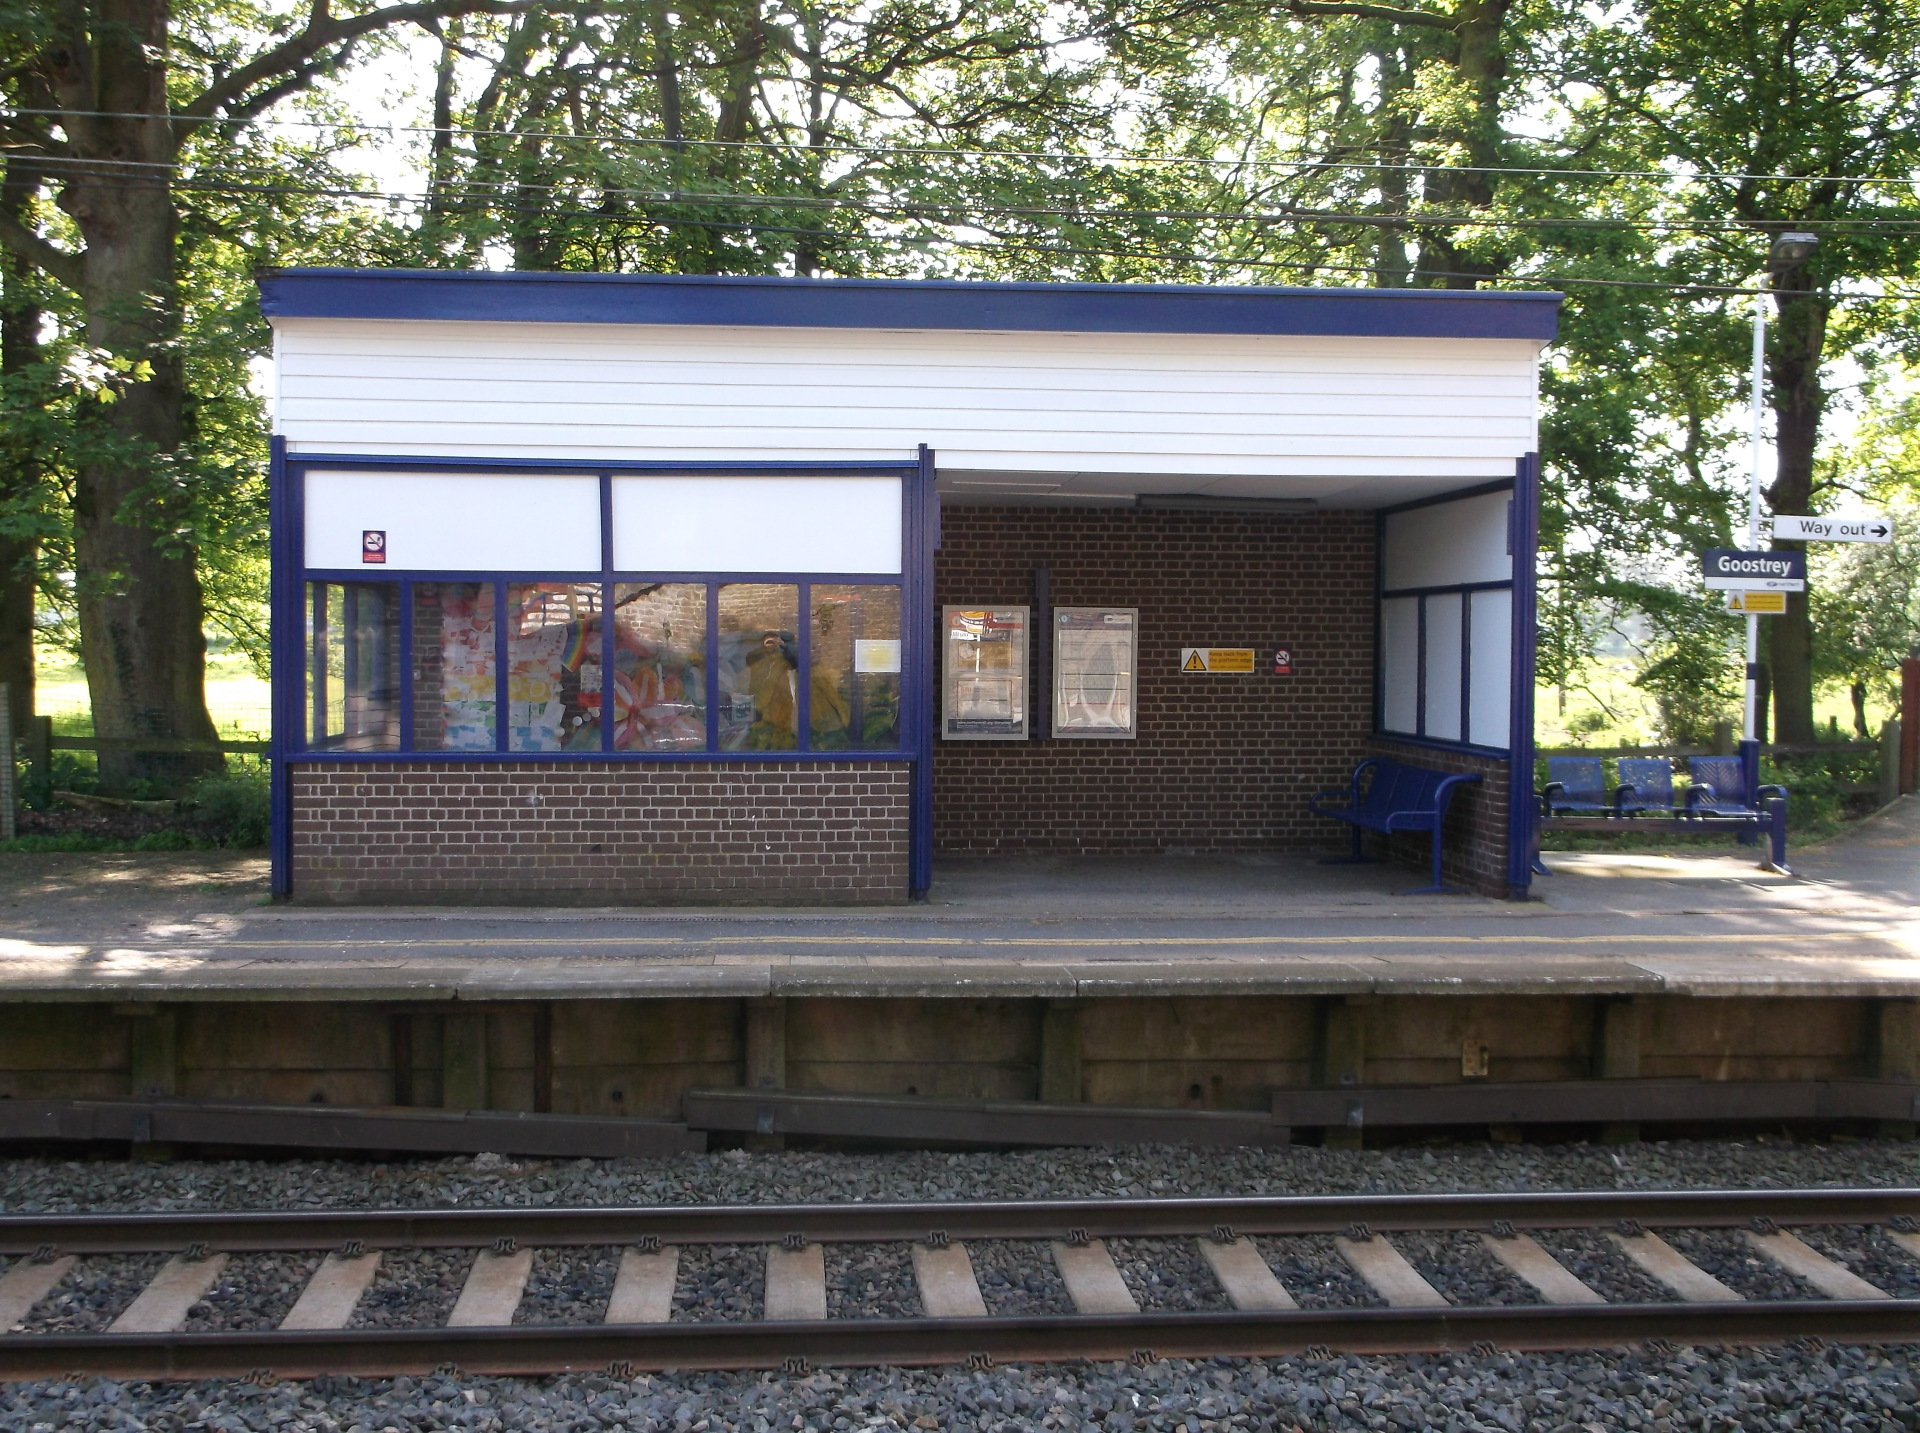 Platform 2 waiting shelter